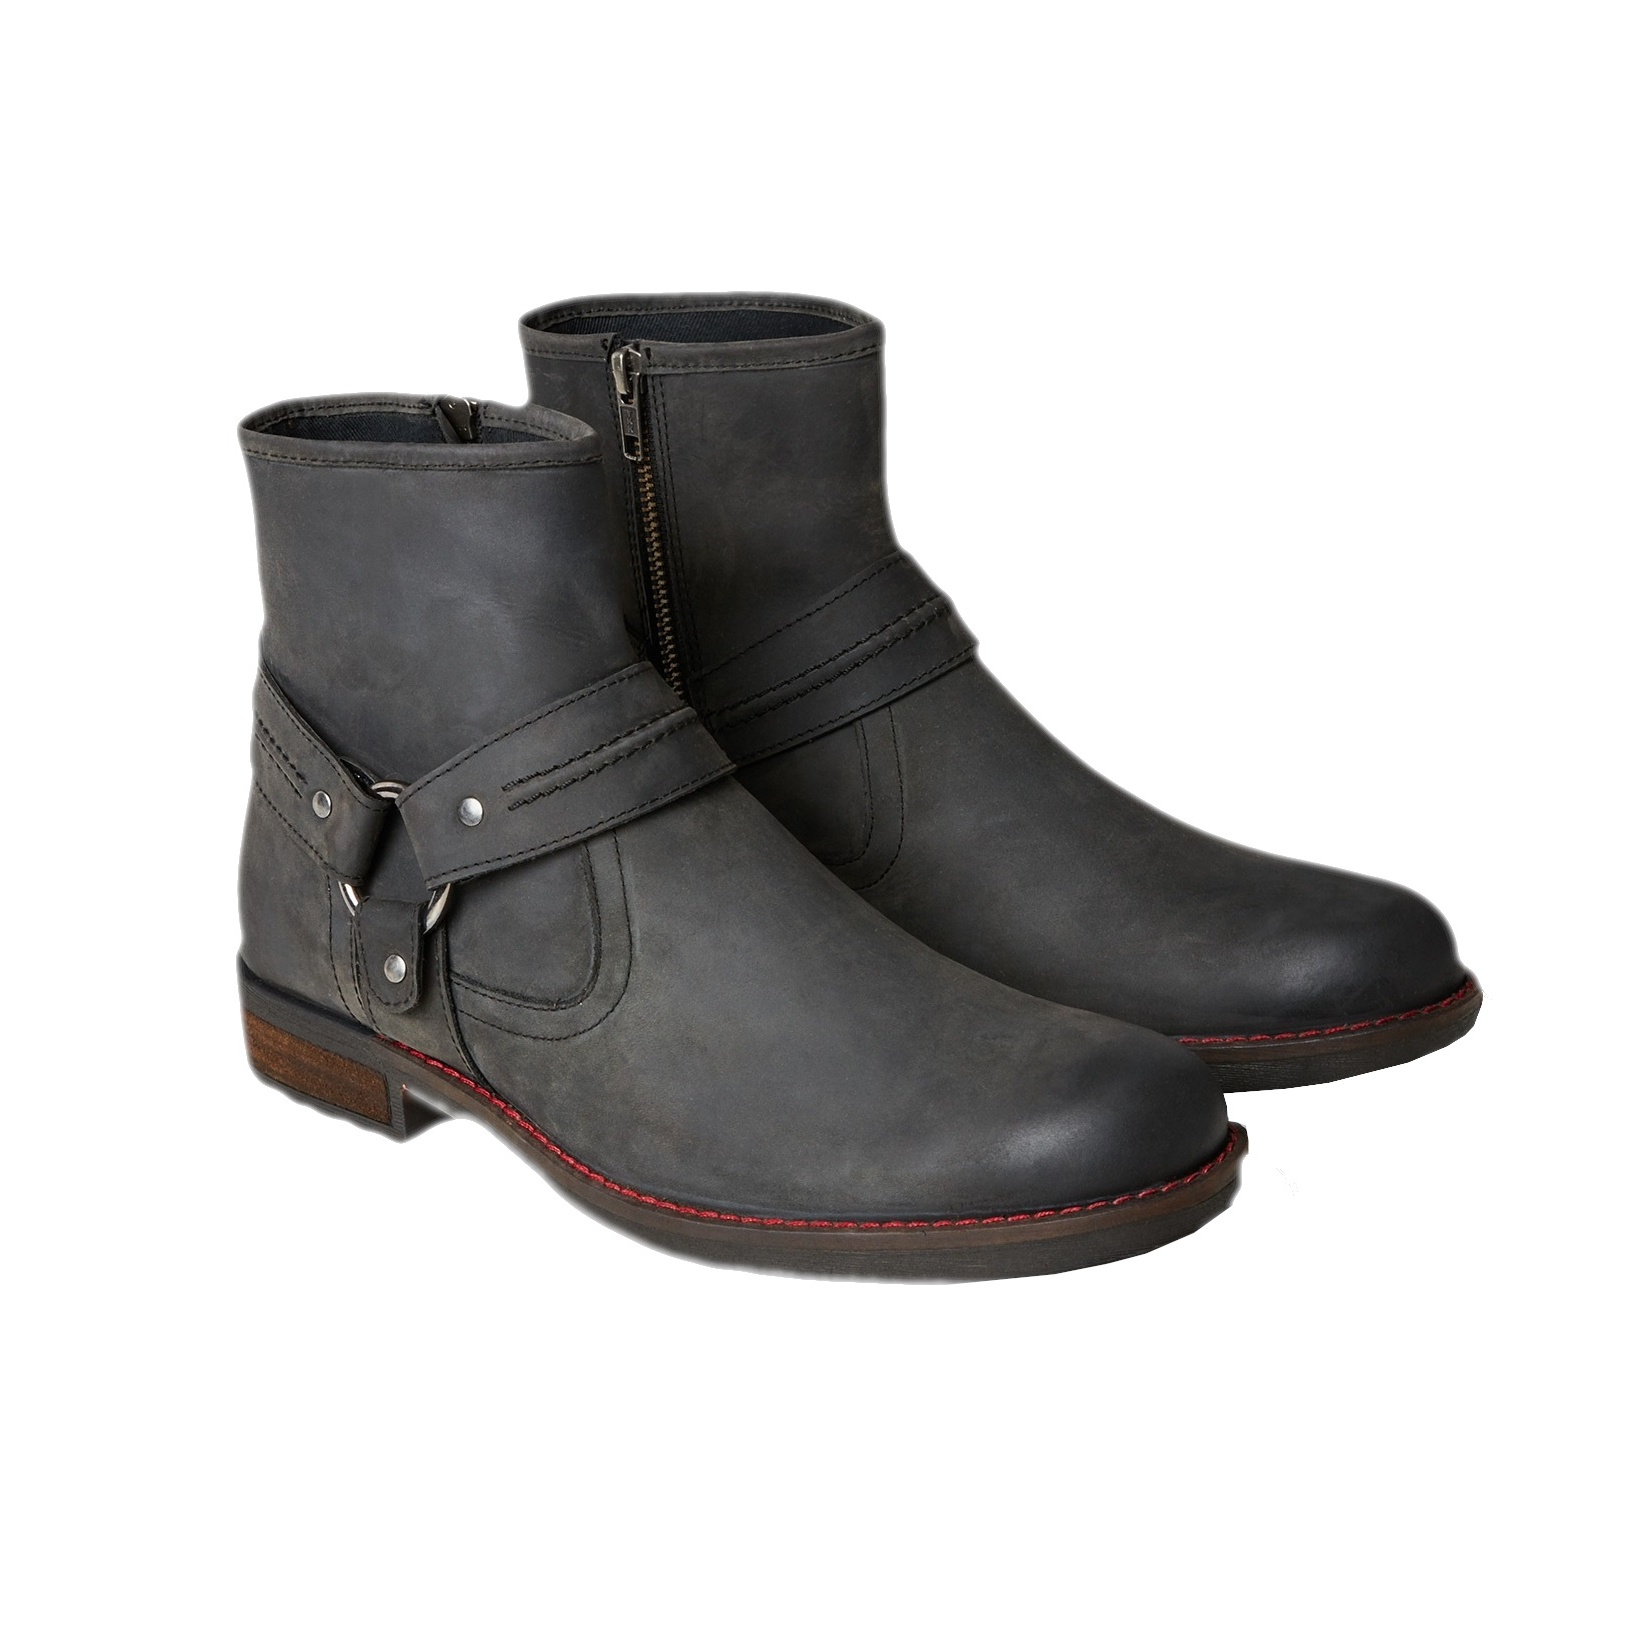 Joe-Browns-Bottines-en-cuir-HOUSTON-Homme-JB688 miniature 9